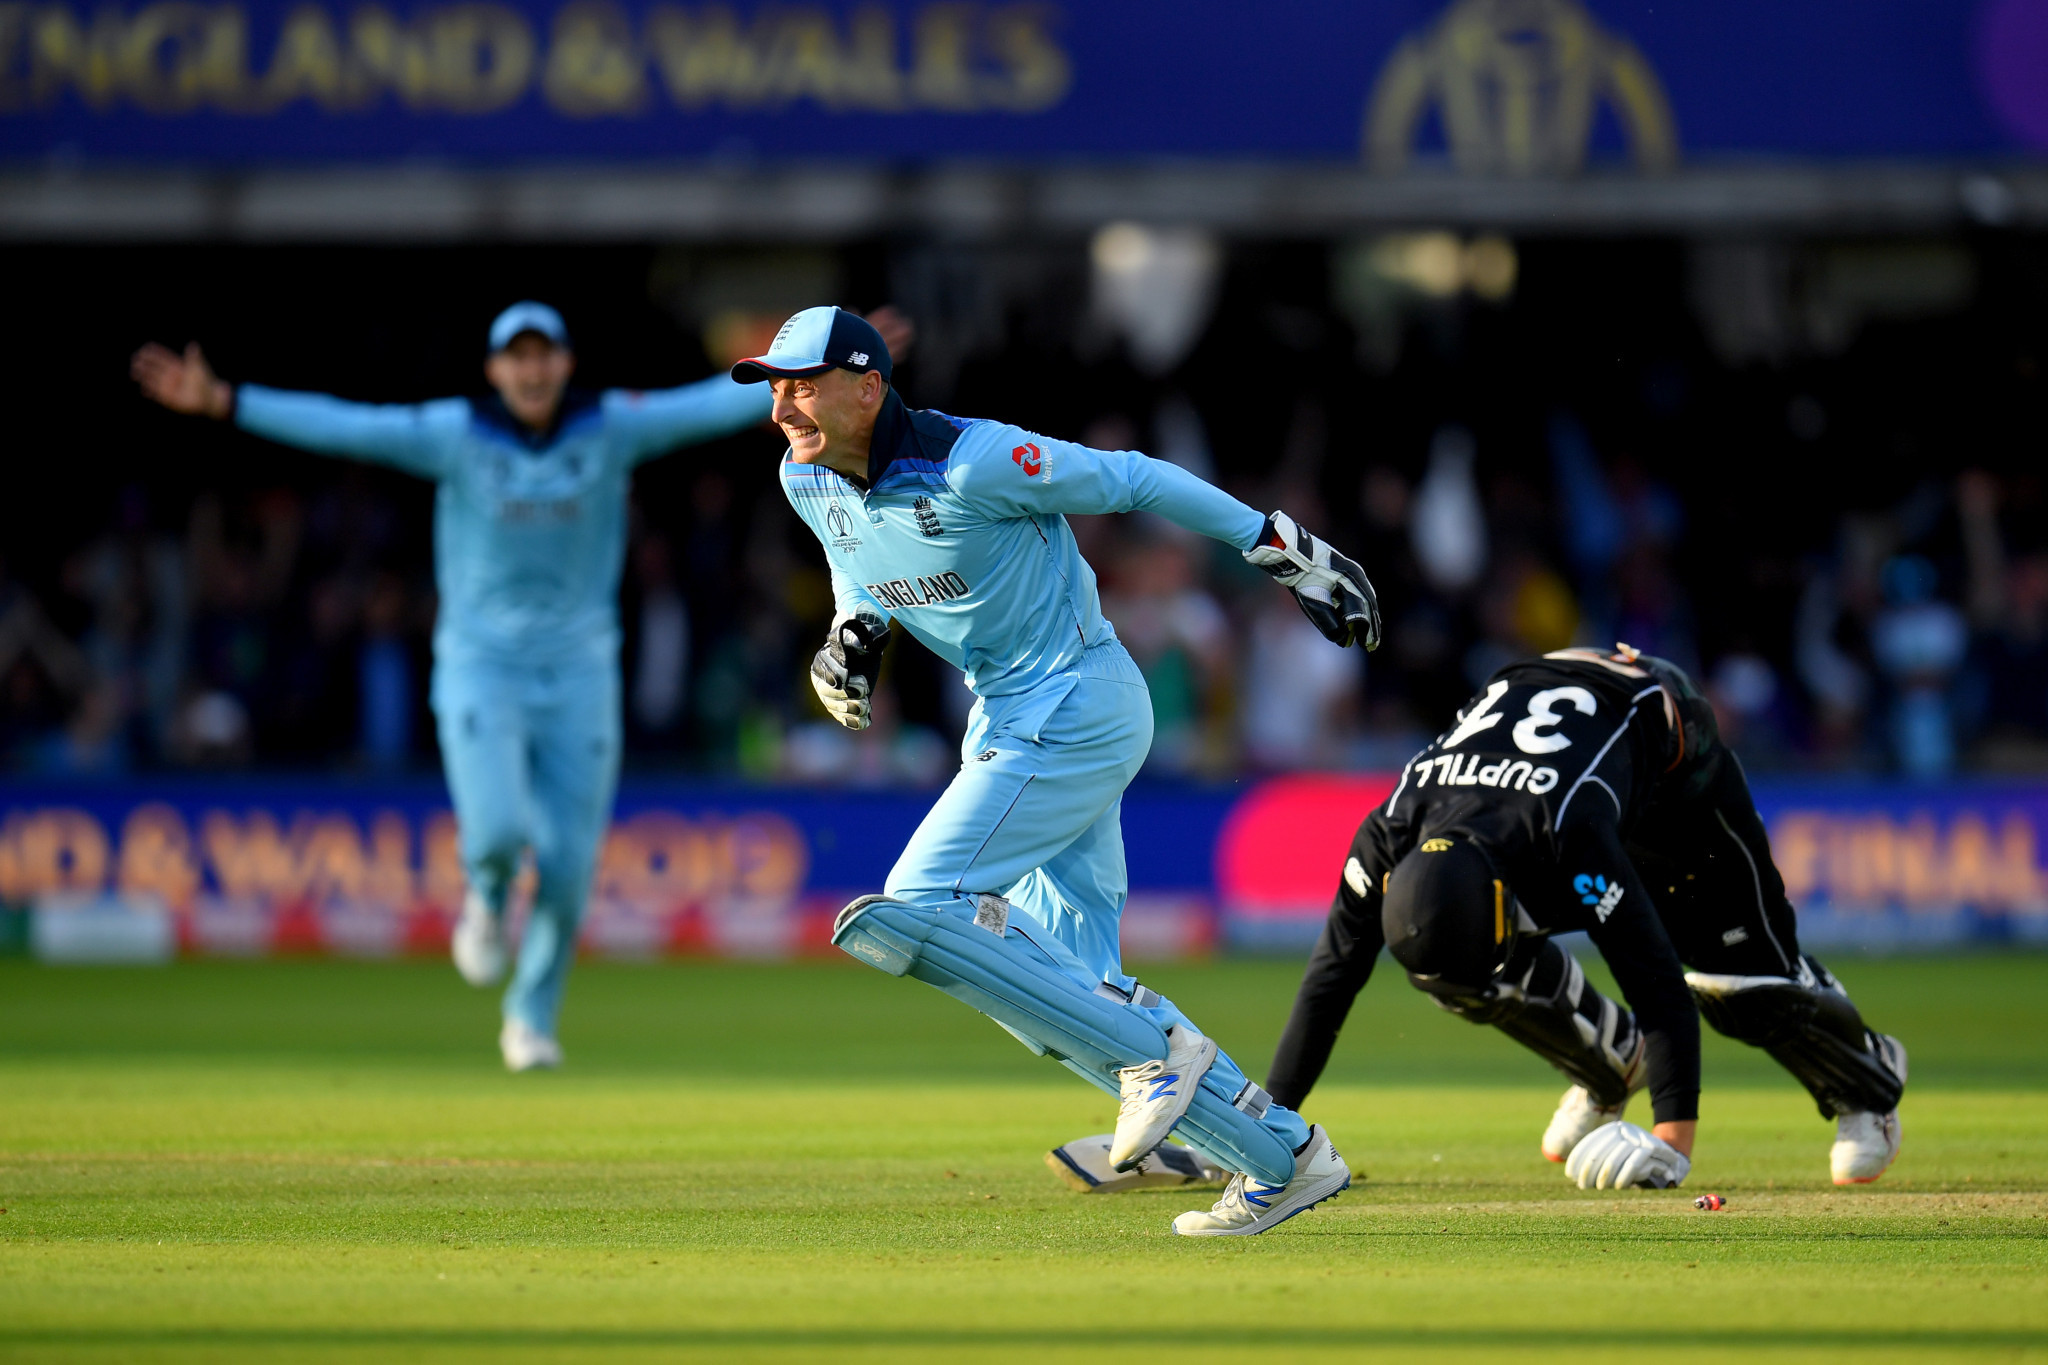 England wicket-keeper Jos Buttler runs out New Zealand's Martin Guptil on the final ball of a dramatic super over to give his side victory in the World Cup final at Lord's ©Getty Images